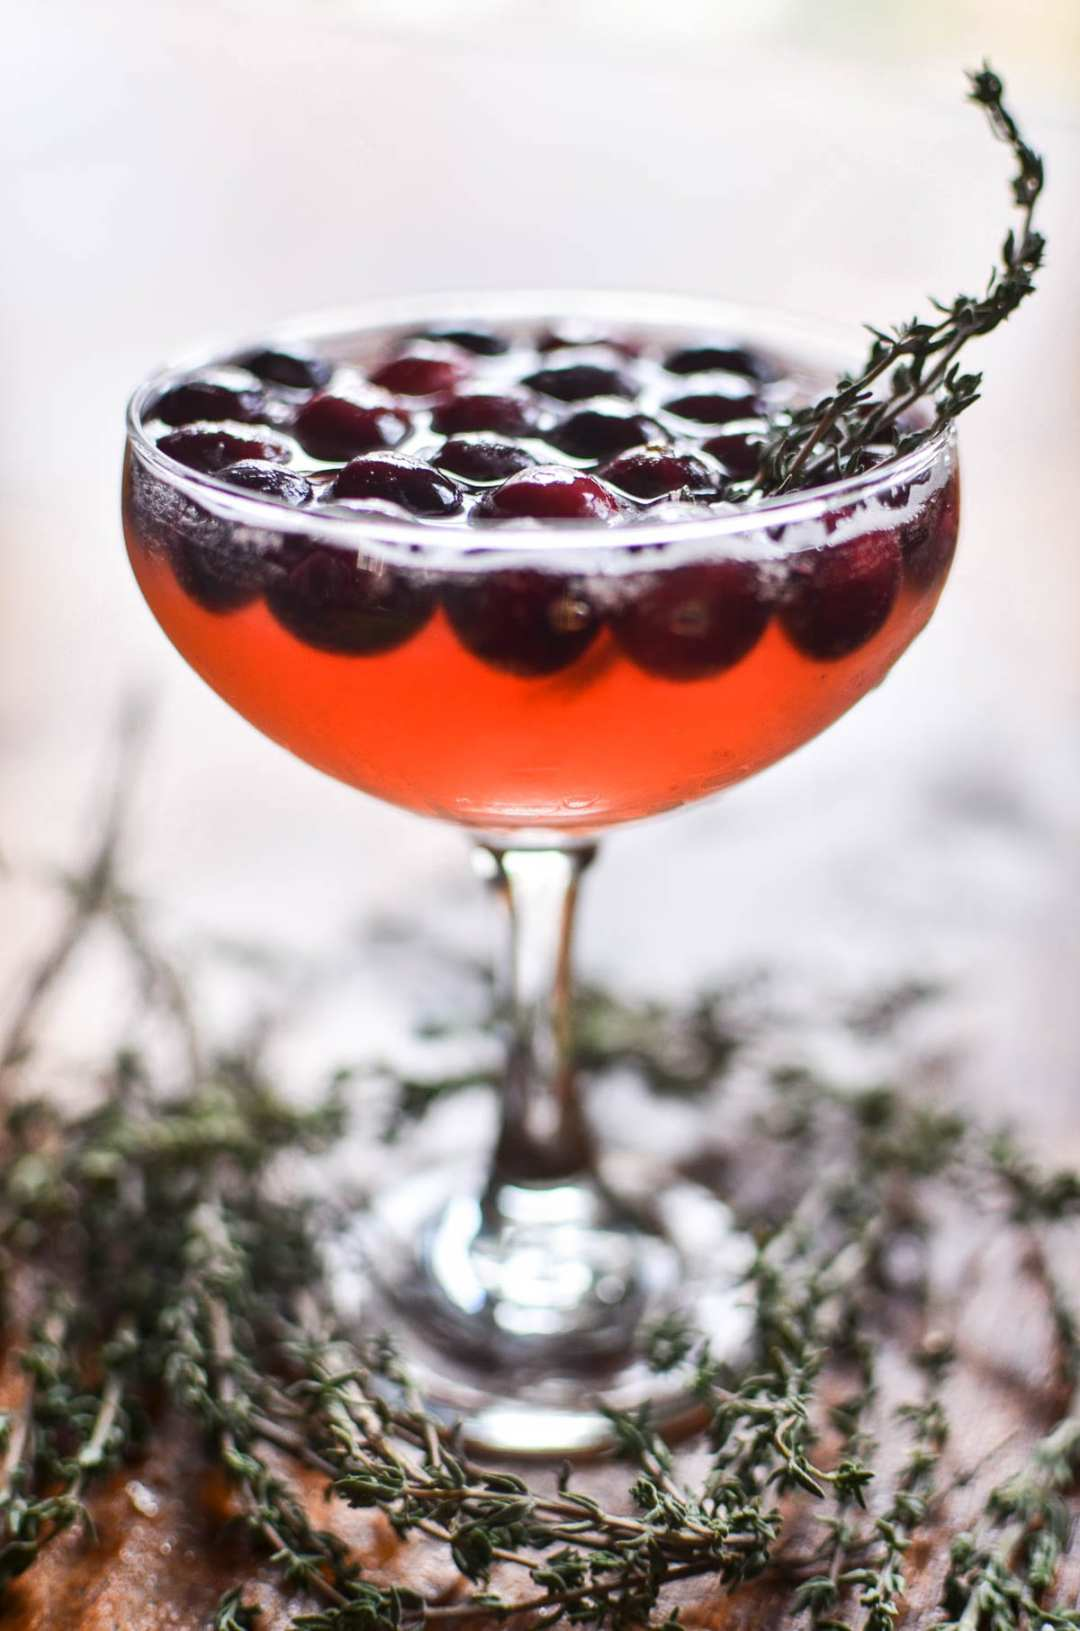 The Cranberry Bog Cocktail